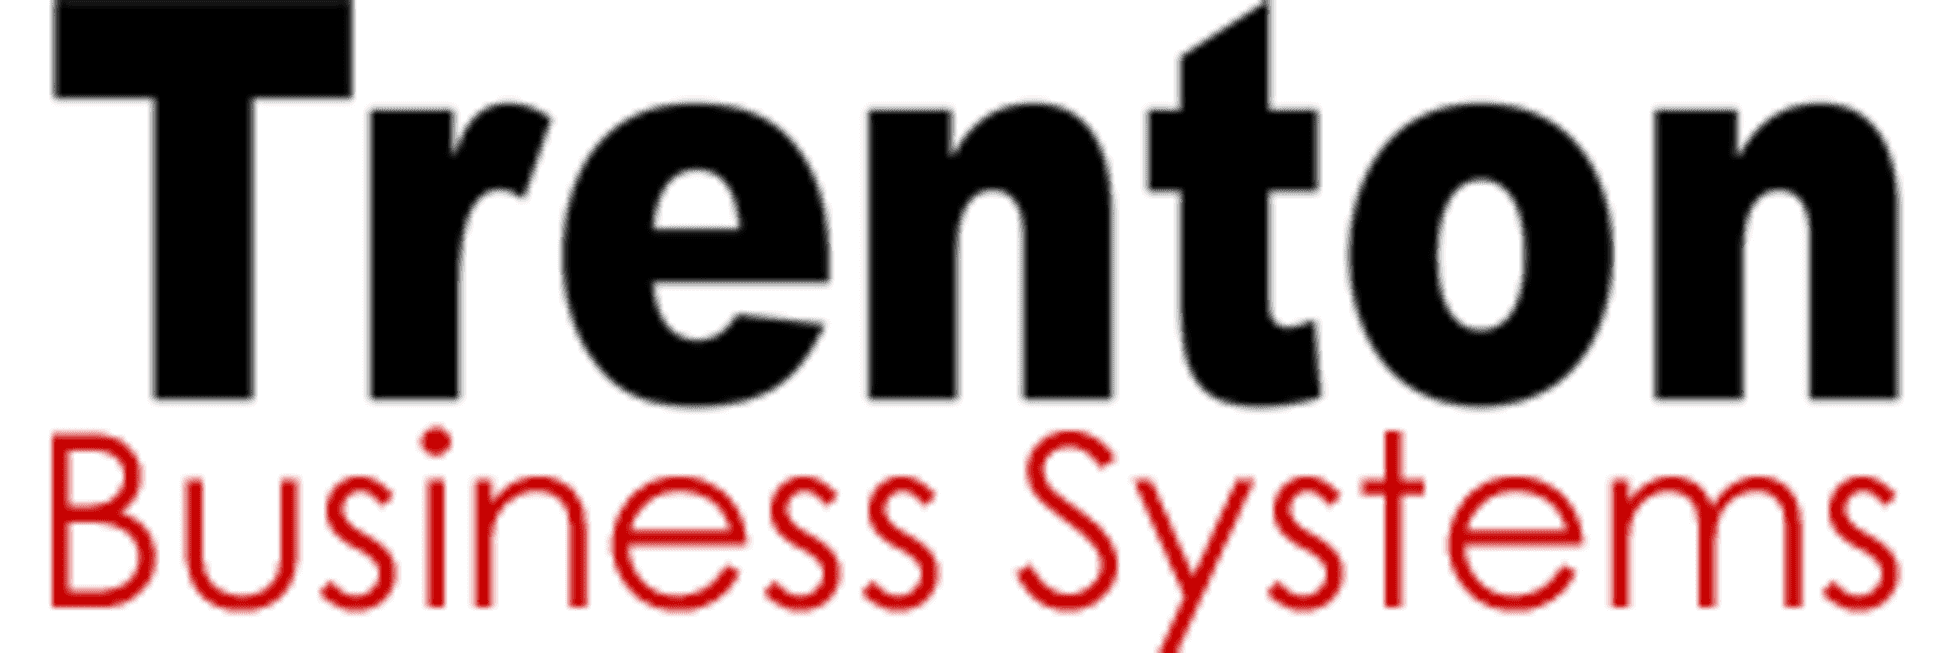 Sponsor - Trenton Business Services